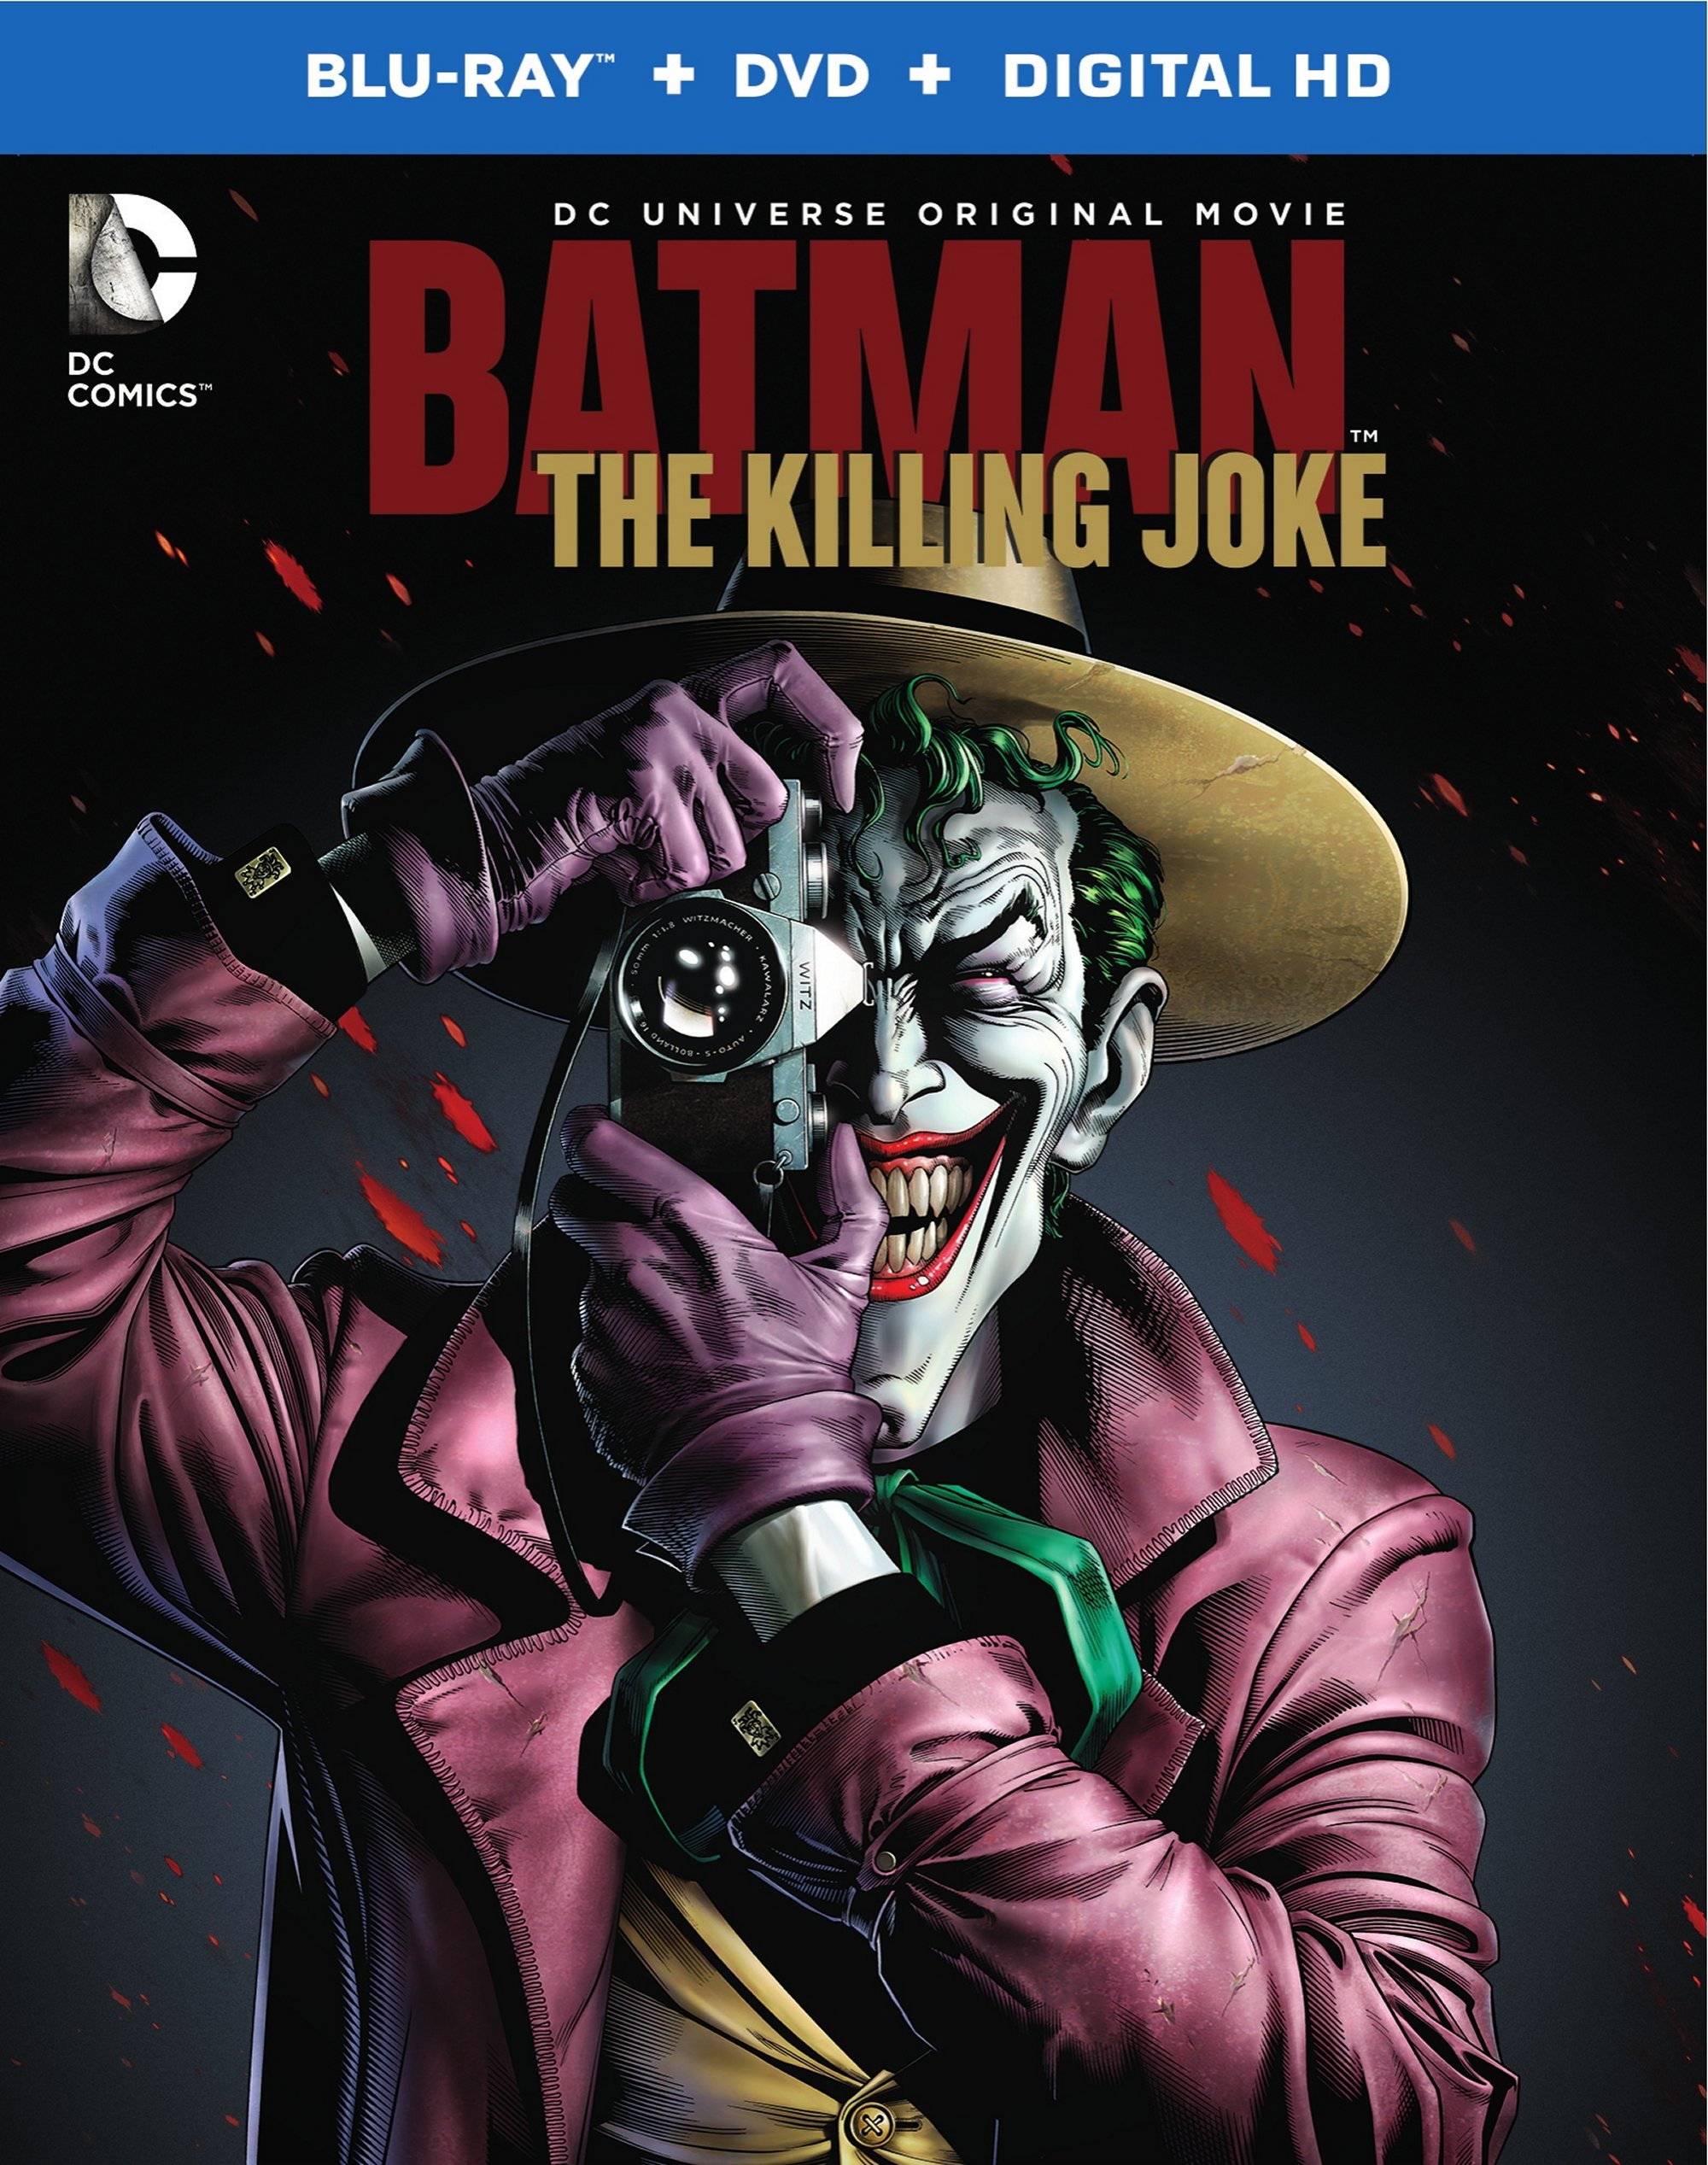 The Killing Joke Blu-ray box art